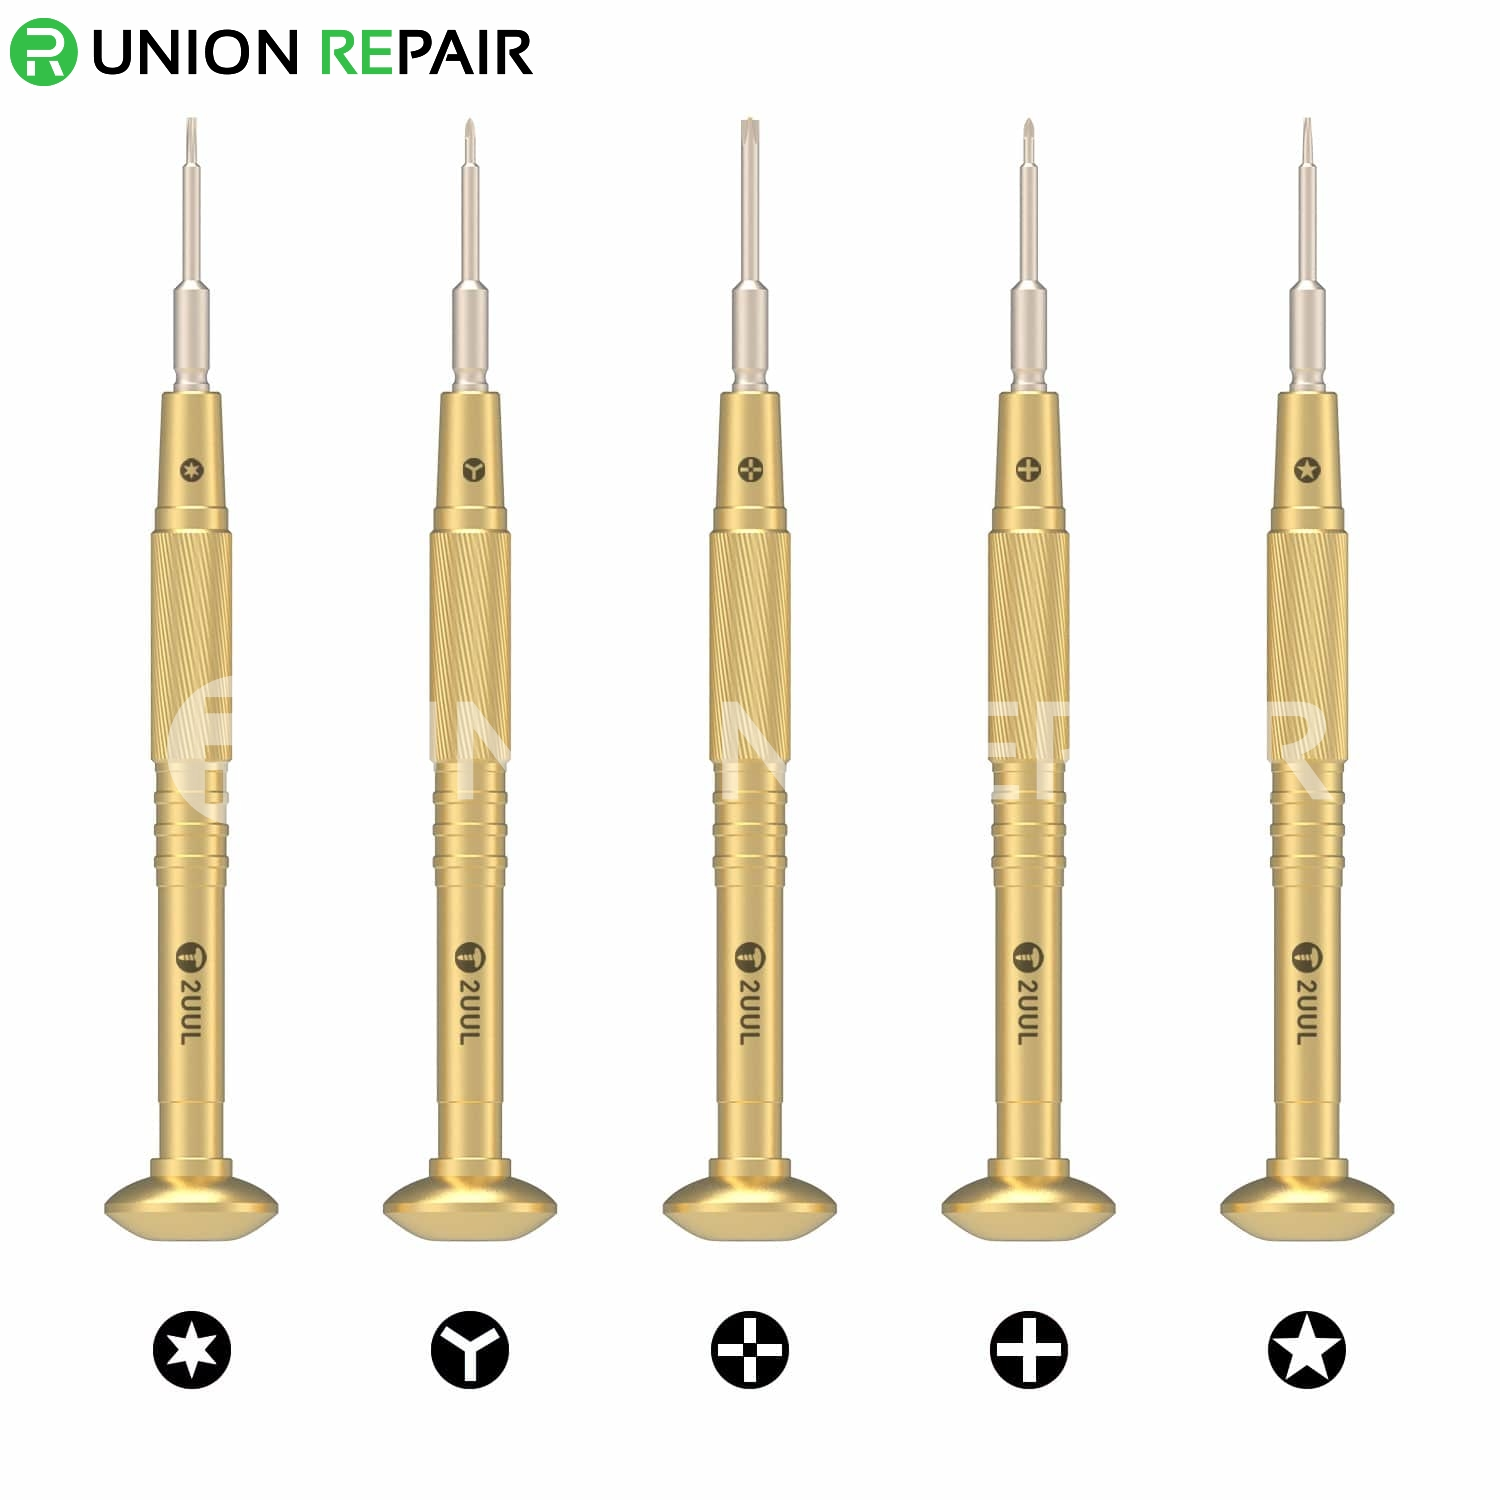 2UUL Brass Handle Heavy Weight Screwdriver for Phone Repair